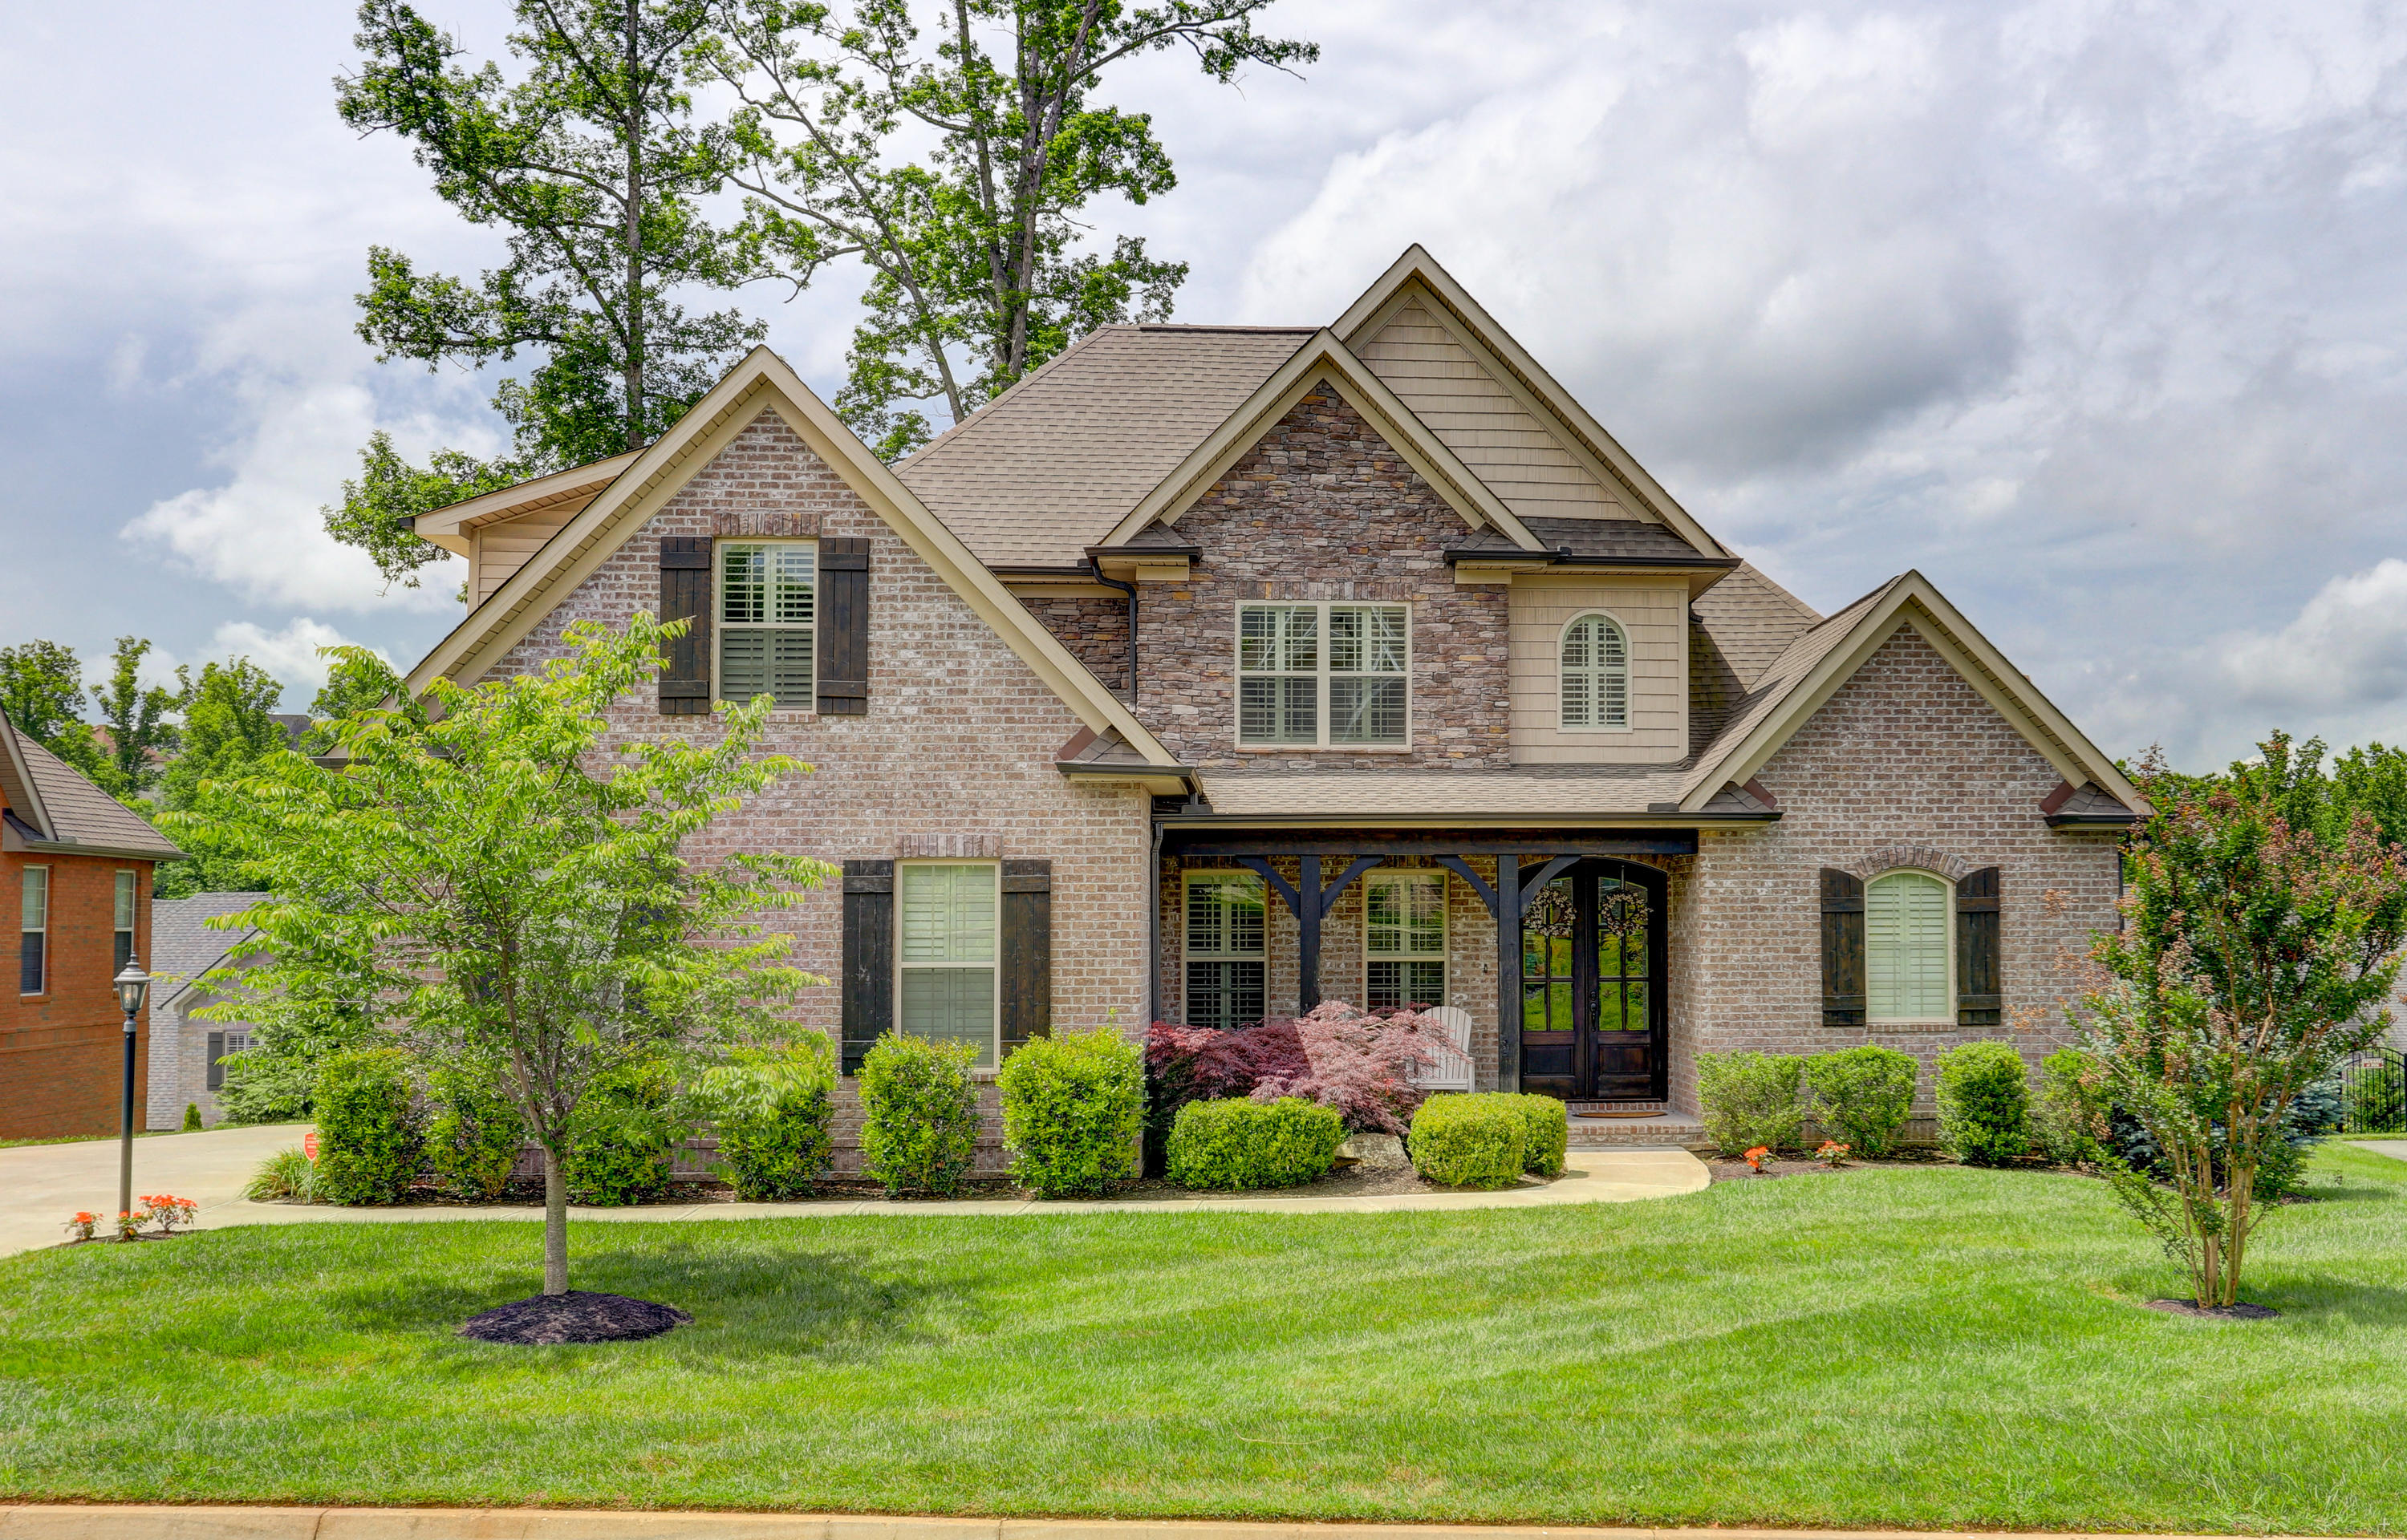 2141 Jakes Walk, Knoxville, Tennessee, United States 37932, 4 Bedrooms Bedrooms, ,4 BathroomsBathrooms,Single Family,For Sale,Jakes Walk,1118428